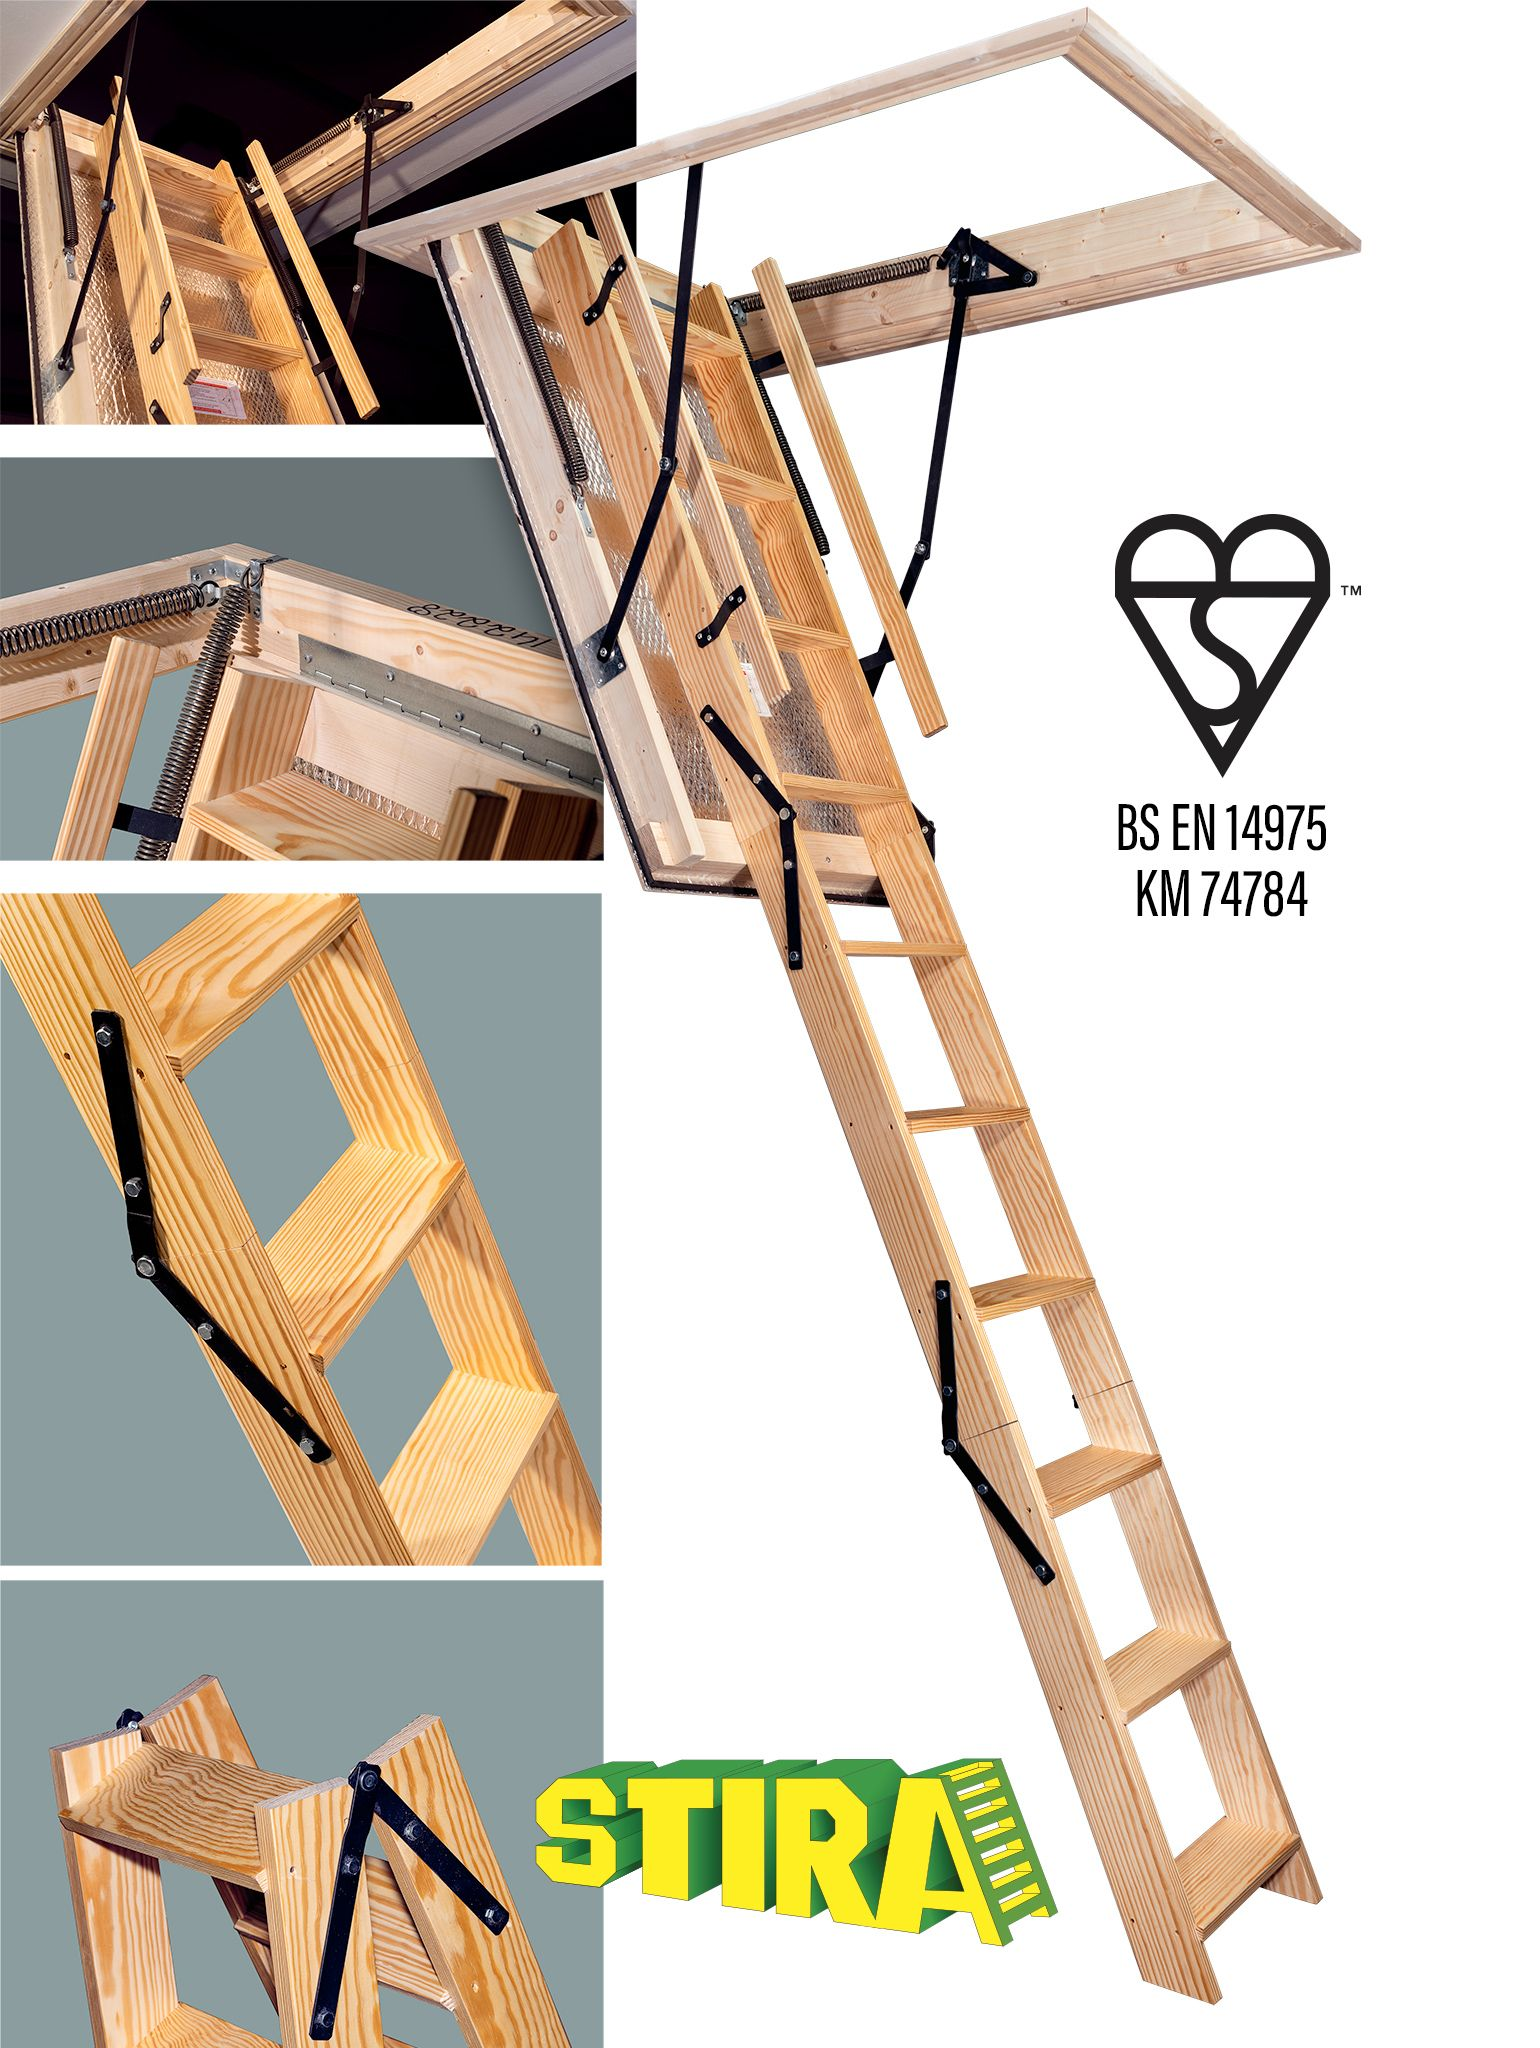 Heavy Duty Stira Folding Attic Stairs Bigger Ladder With 120mm Deep Steps Heavy Duty Hinges And Double Spr Folding Attic Stairs Attic Stairs Attic Conversion